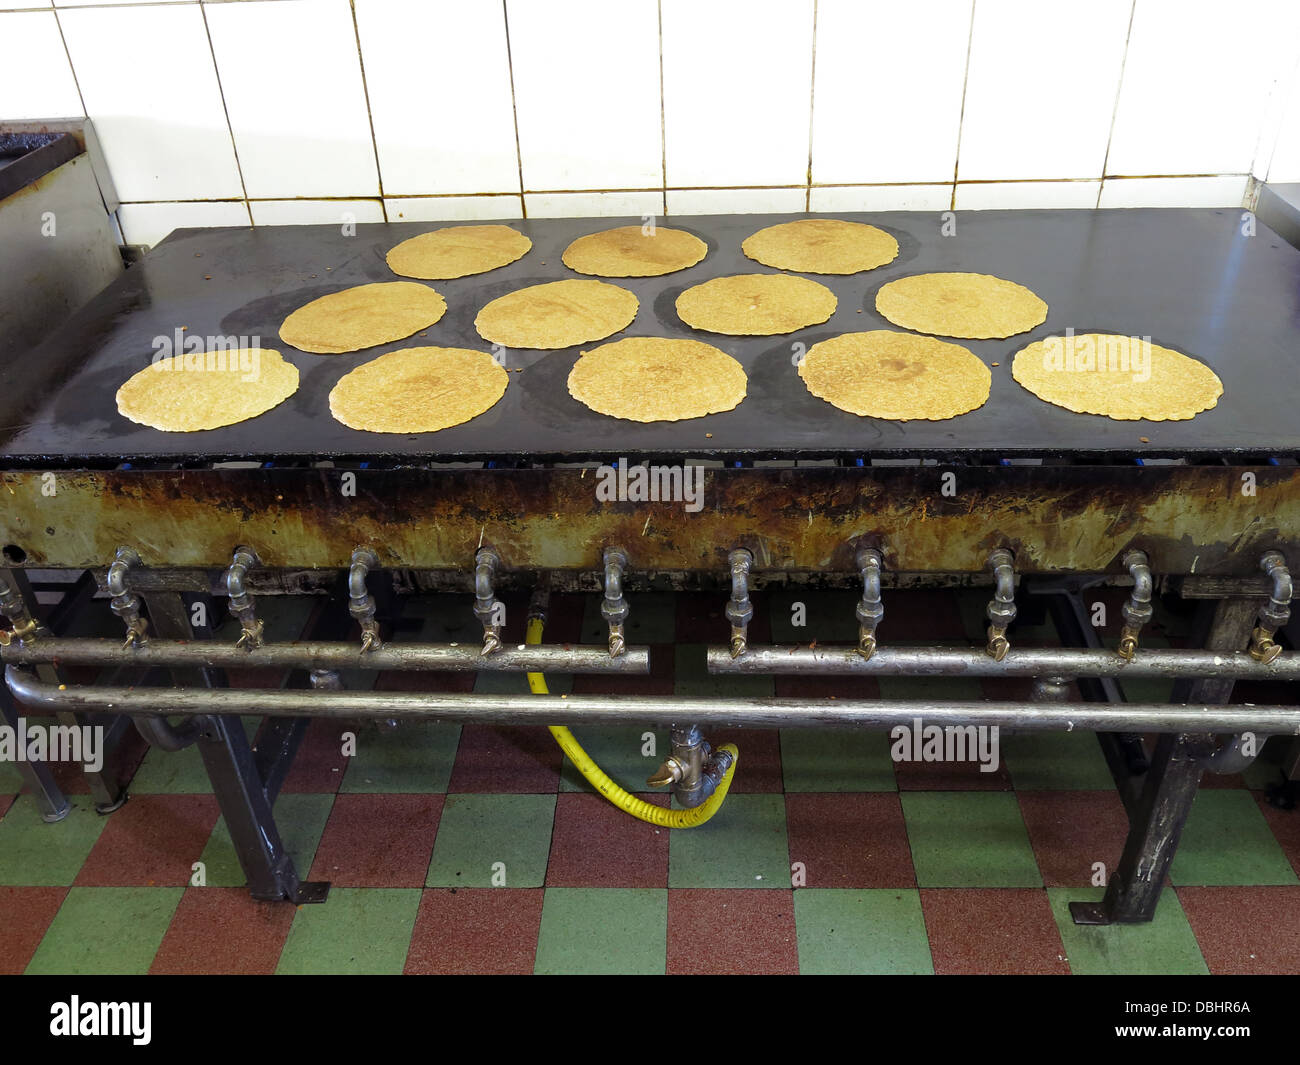 snacks,fastfood,fast,food,traditional,midlands,England,English,UK,British,North,Staffordshire,pancake,made,from,oatmeal,flour,and,yeast,griddle,or,baxton,Potteries,oatcakes,Derbyshire,bacon,cheese,fillings,filled,with,small,commercial,premises,sell,selling,making,traditionalists,mix,cook,cooking,gotonysmith,Longton,Newcastle,frying,grilling,England,English,old,olde,style,menu,way,manner,ways,strange,foods,local,speciality,special,clayhead,pothead,clayheads,potheads,Kitchen,Hanley,iron,griddle,irongriddle,bright,yellow,filling,meal,meals,menu,cook,cooks,potters,oats,low,on,the,Glycemic,Index,King,St,street,King,Street,Oatcakes,113,King,Street,St,Fenton,SOT,ST4,3NA,01782,598176,ST43NA,01782598176,Buy Pictures of,Buy Images Of